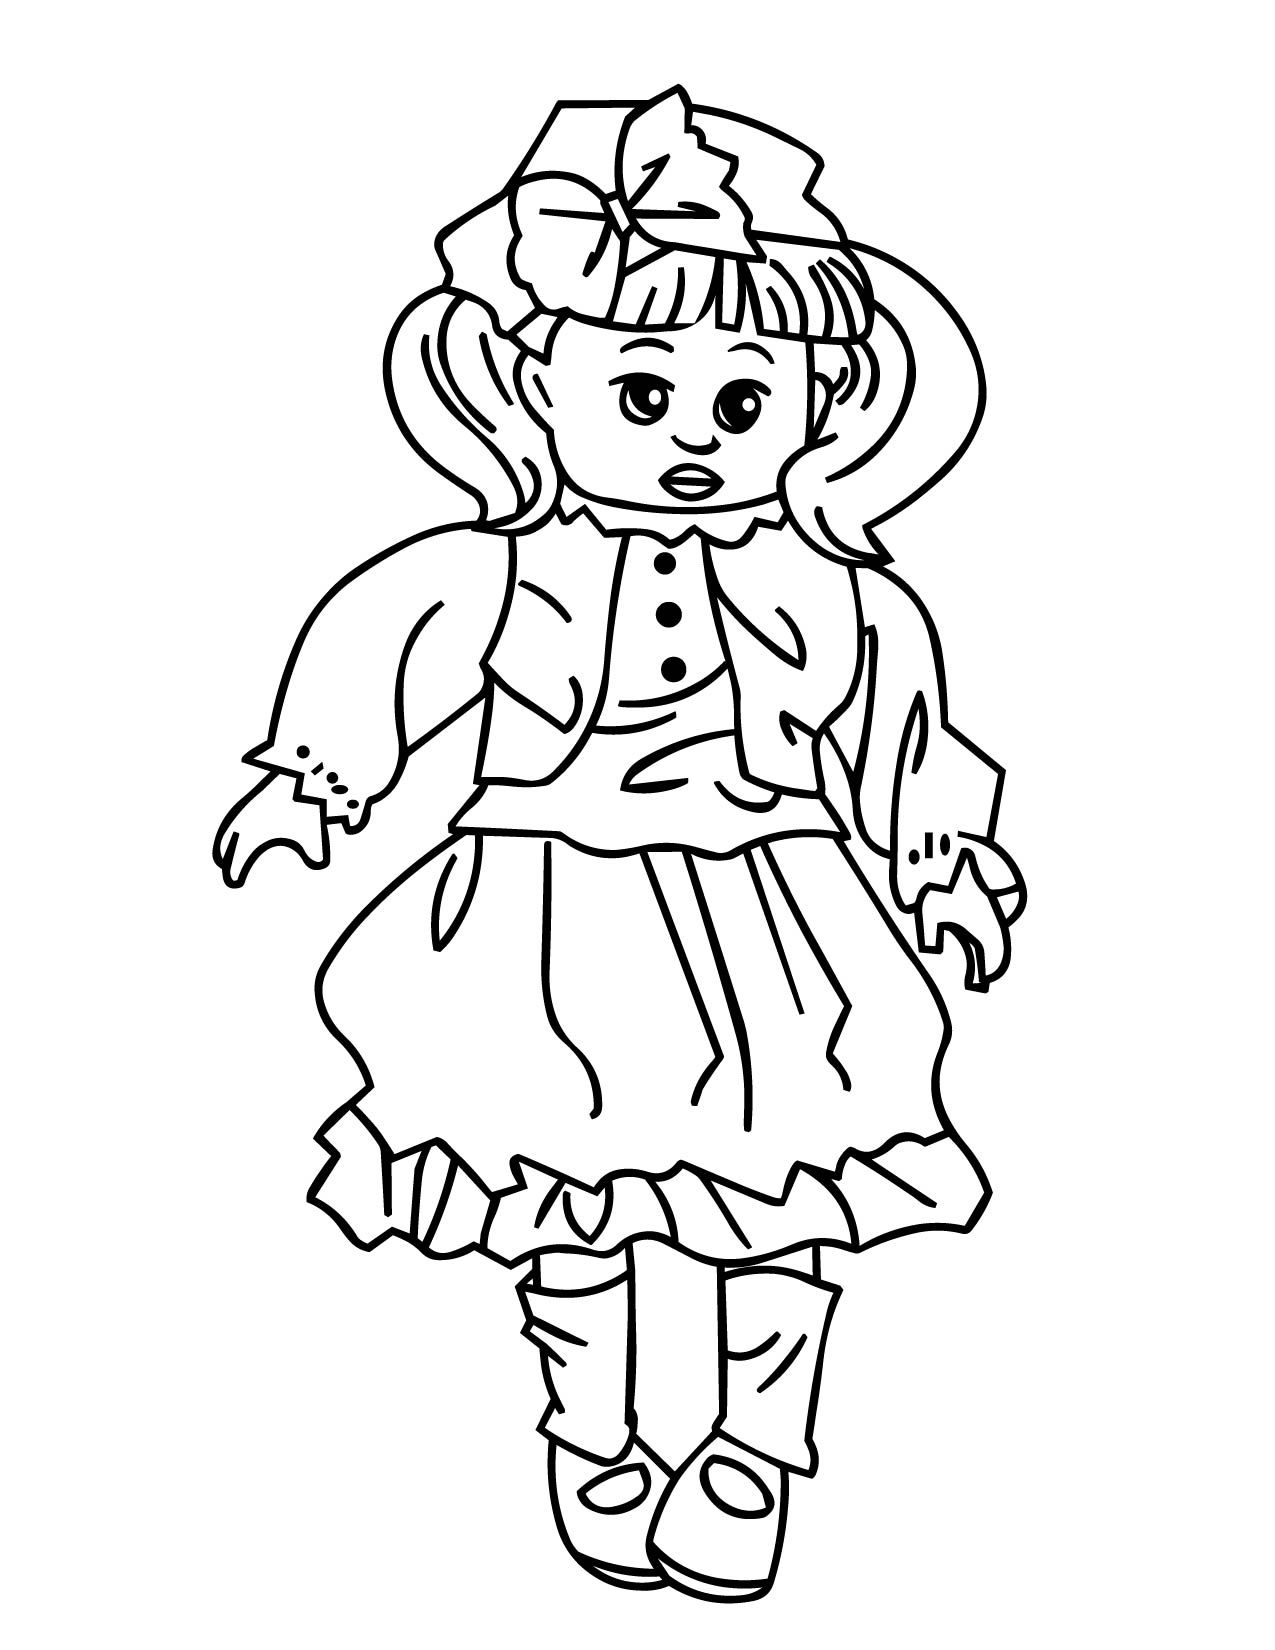 Russian Nesting Dolls Coloring Pages At Getcolorings